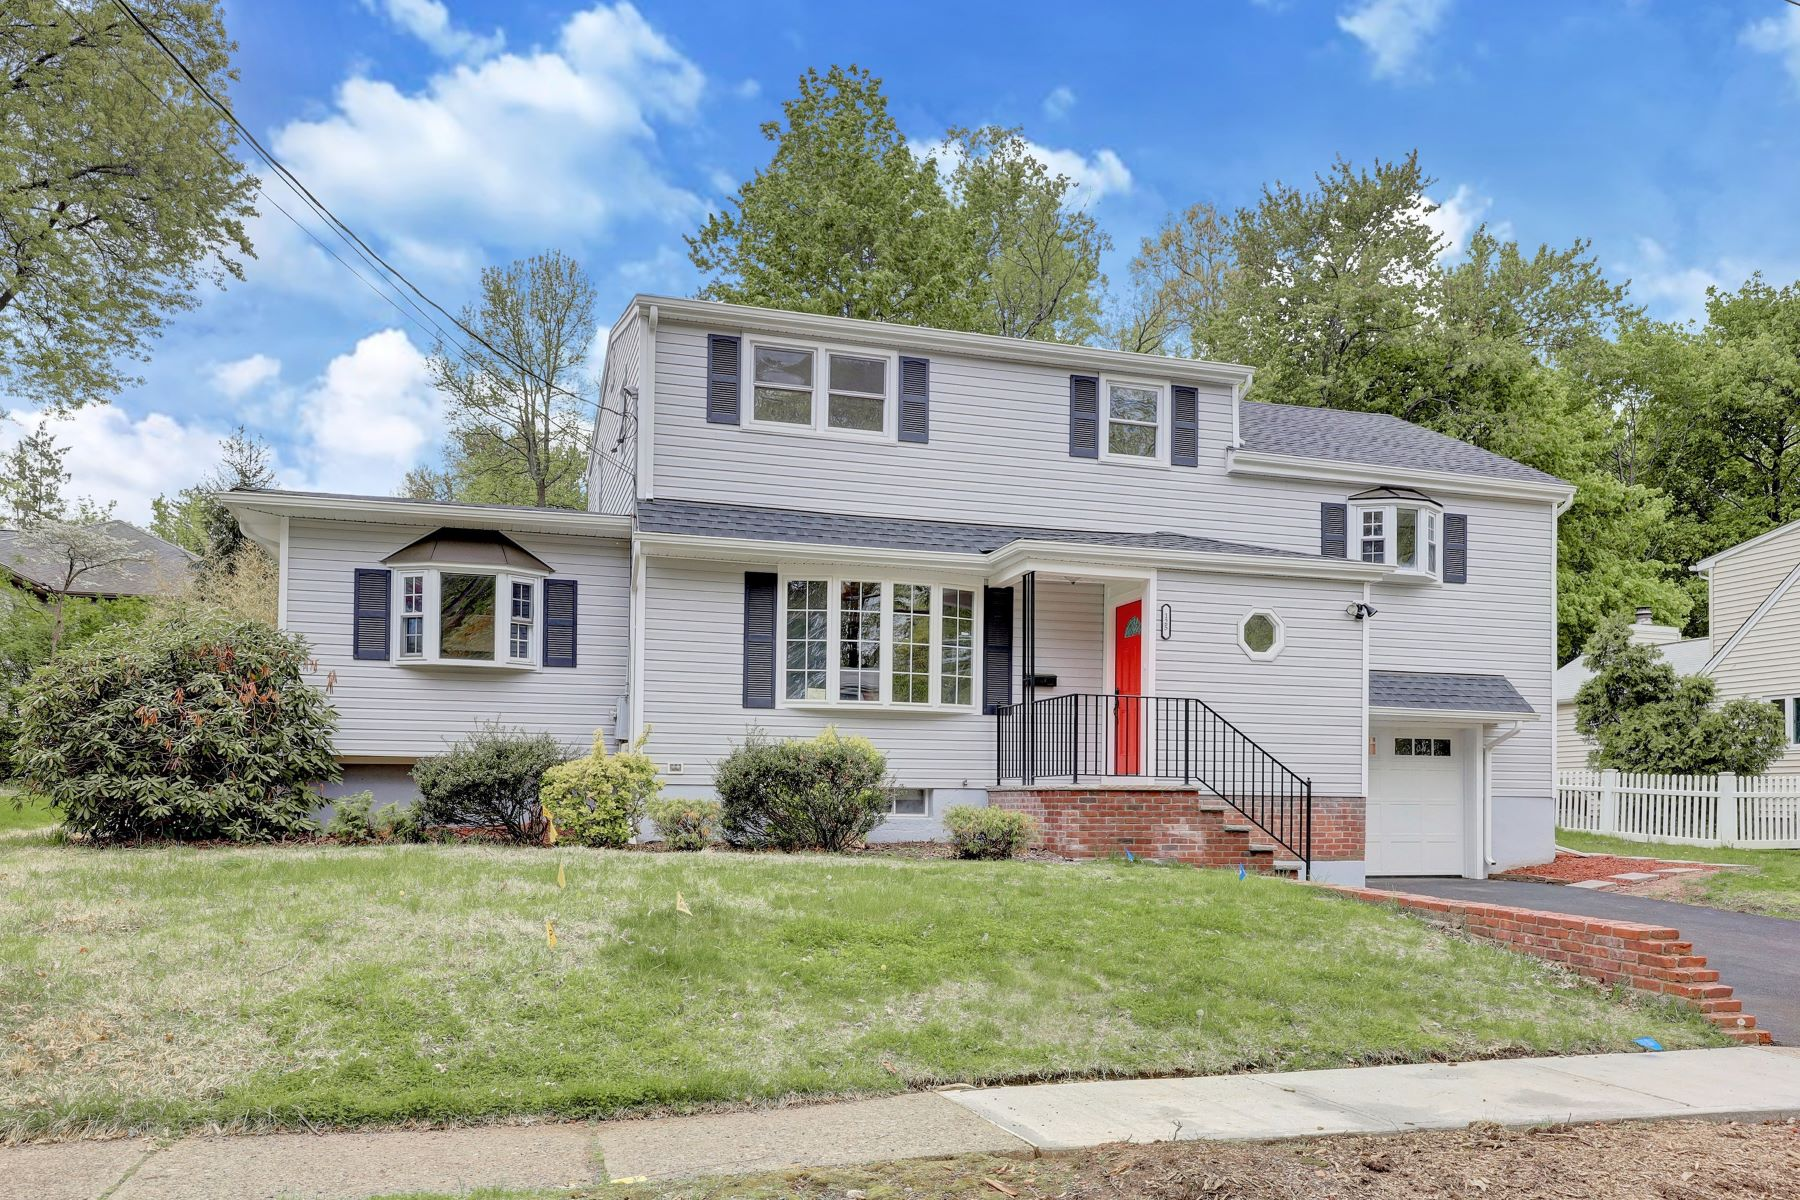 Single Family Homes for Sale at Beautiful & Bright 125 Pascack Ave Emerson, New Jersey 07630 United States